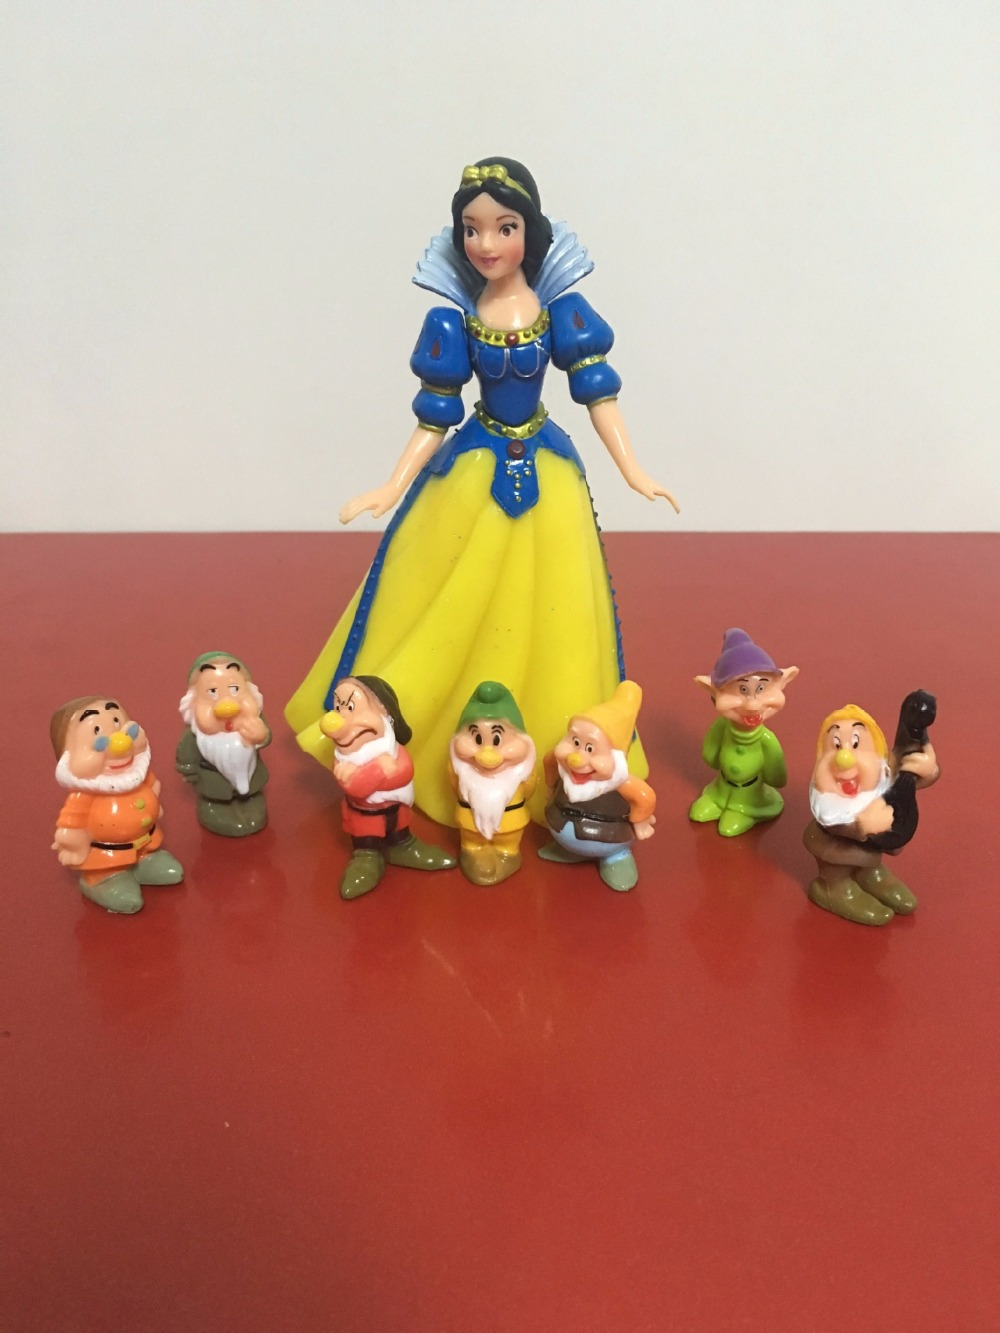 8pcs high quality cake decorative doll snow white princess and the 7 Dwarfs Doll Toy Figurine ornaments custom baby wallpaper snow white and the seven dwarfs bedroom for the children s room mural backdrop stereoscopic 3d